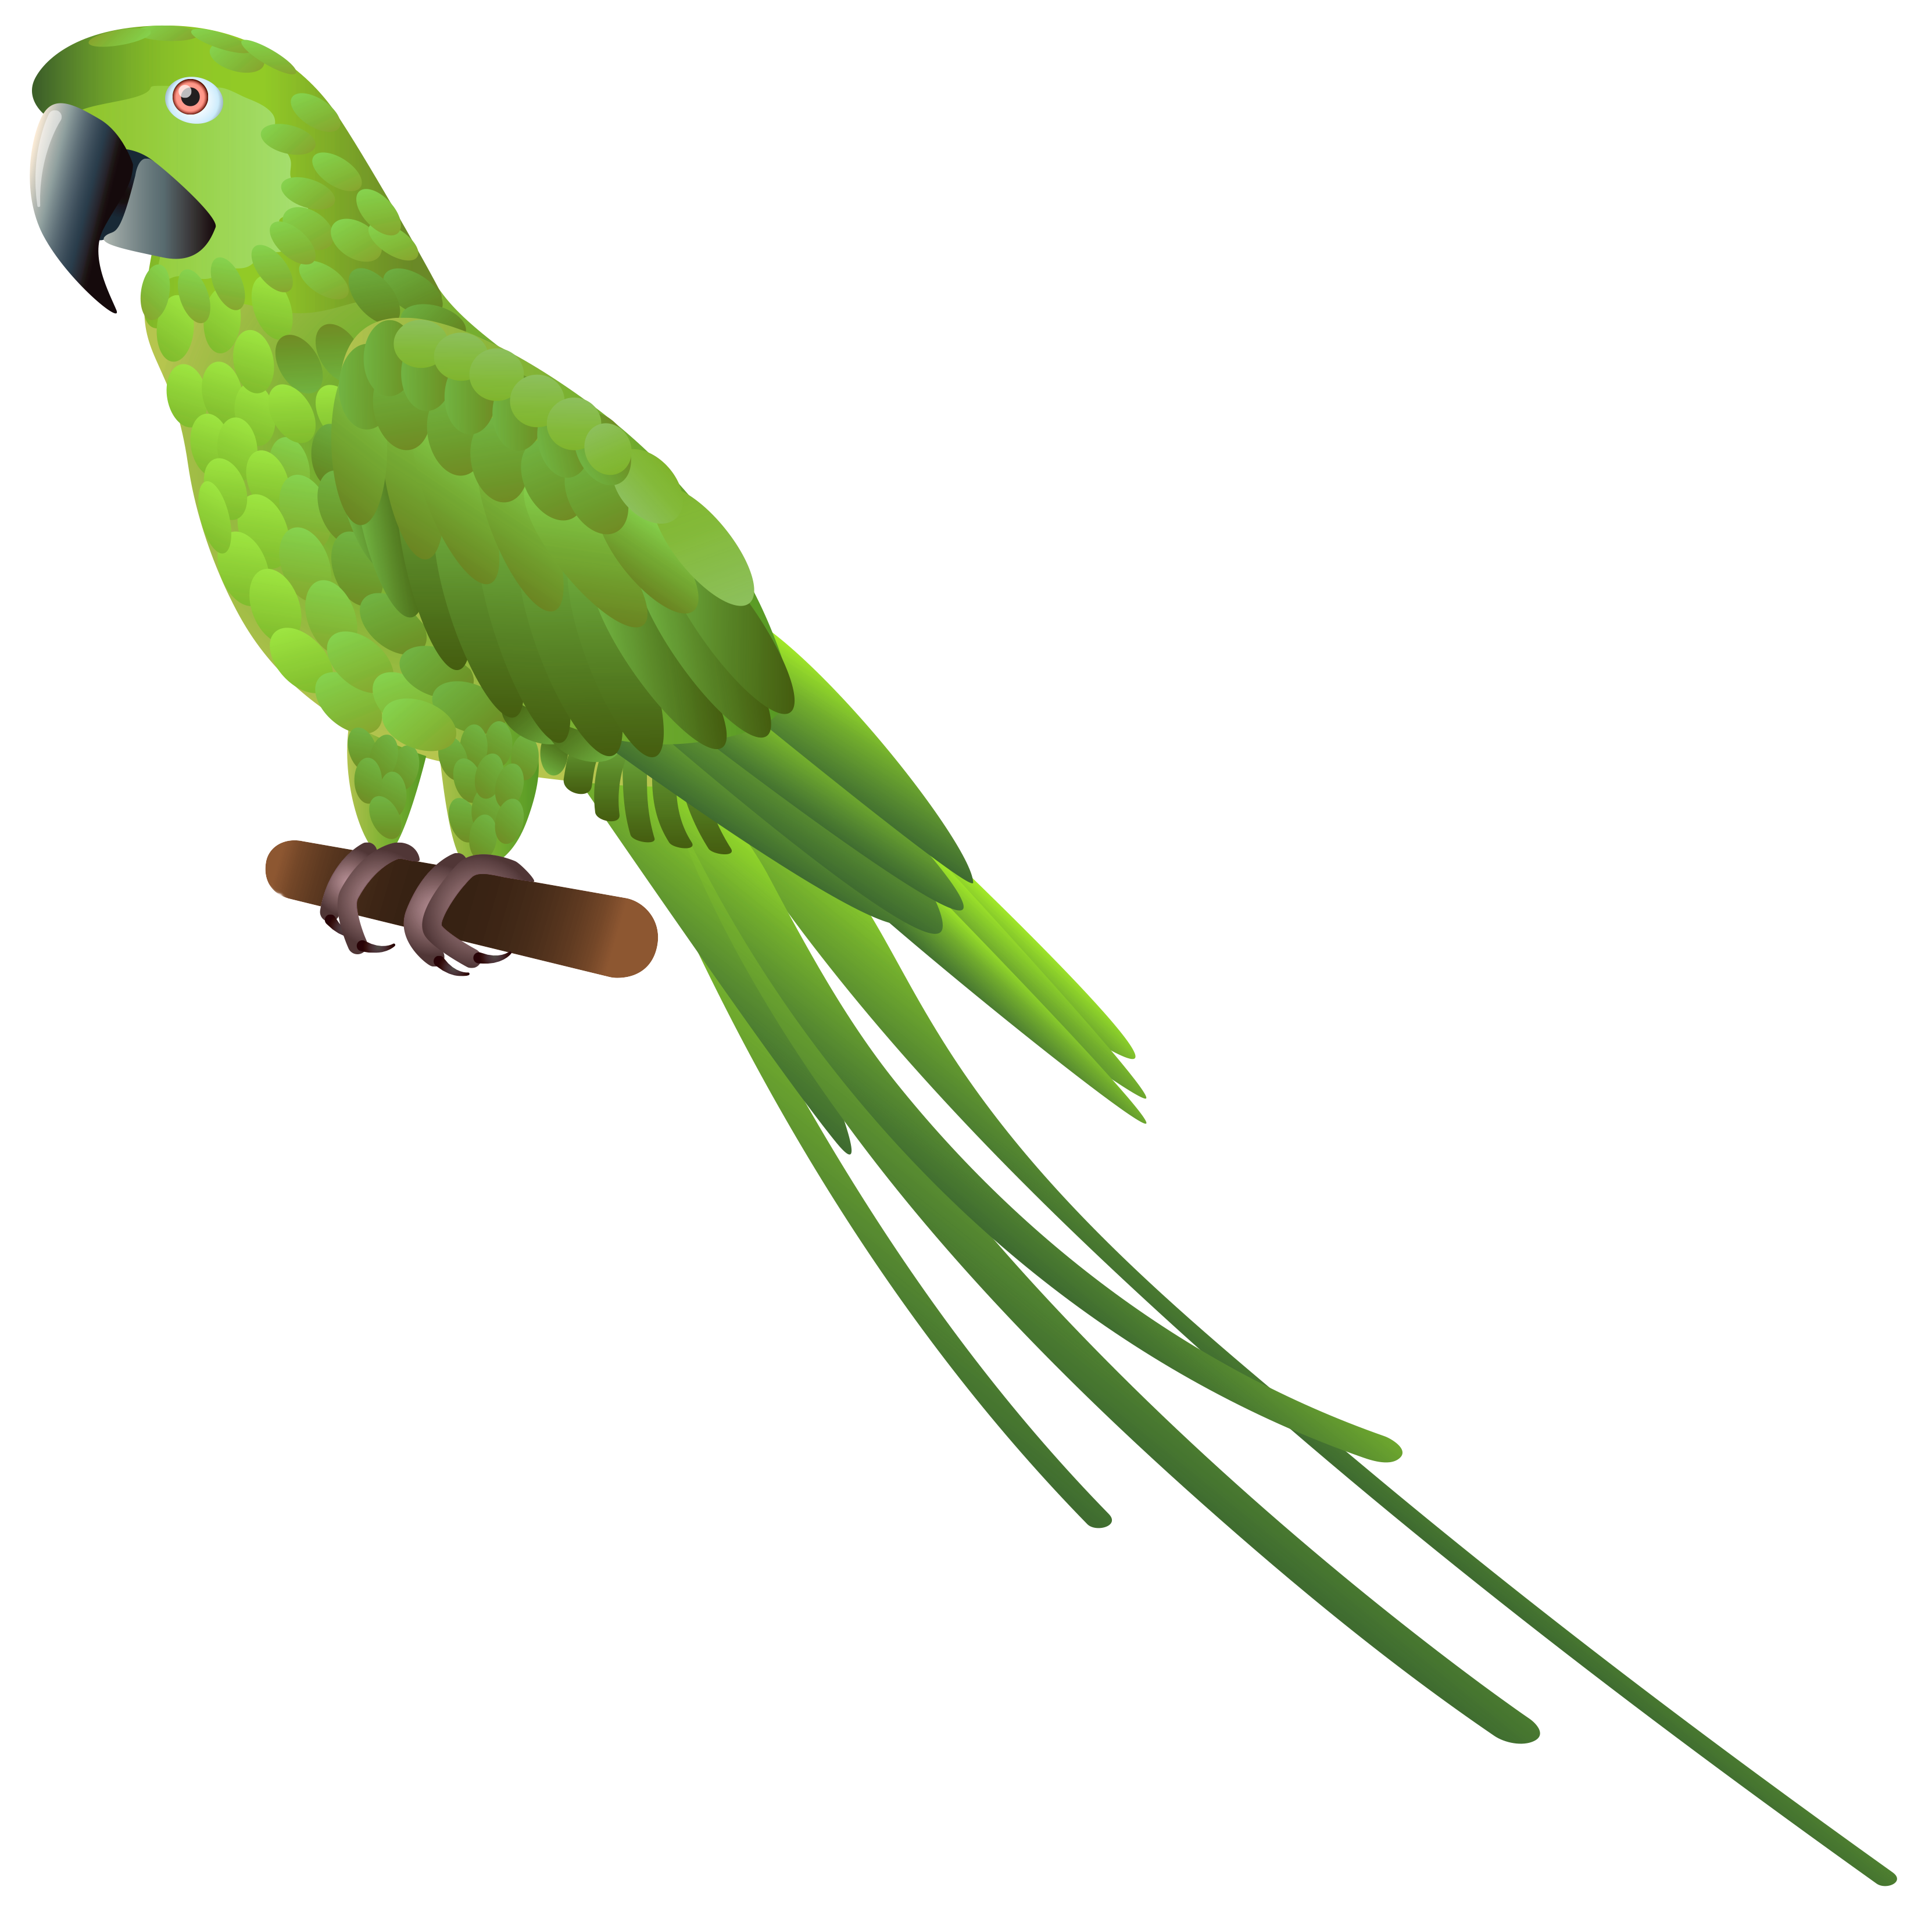 Green fish clipart black and white library Green Parrot PNG Clipart - Best WEB Clipart black and white library